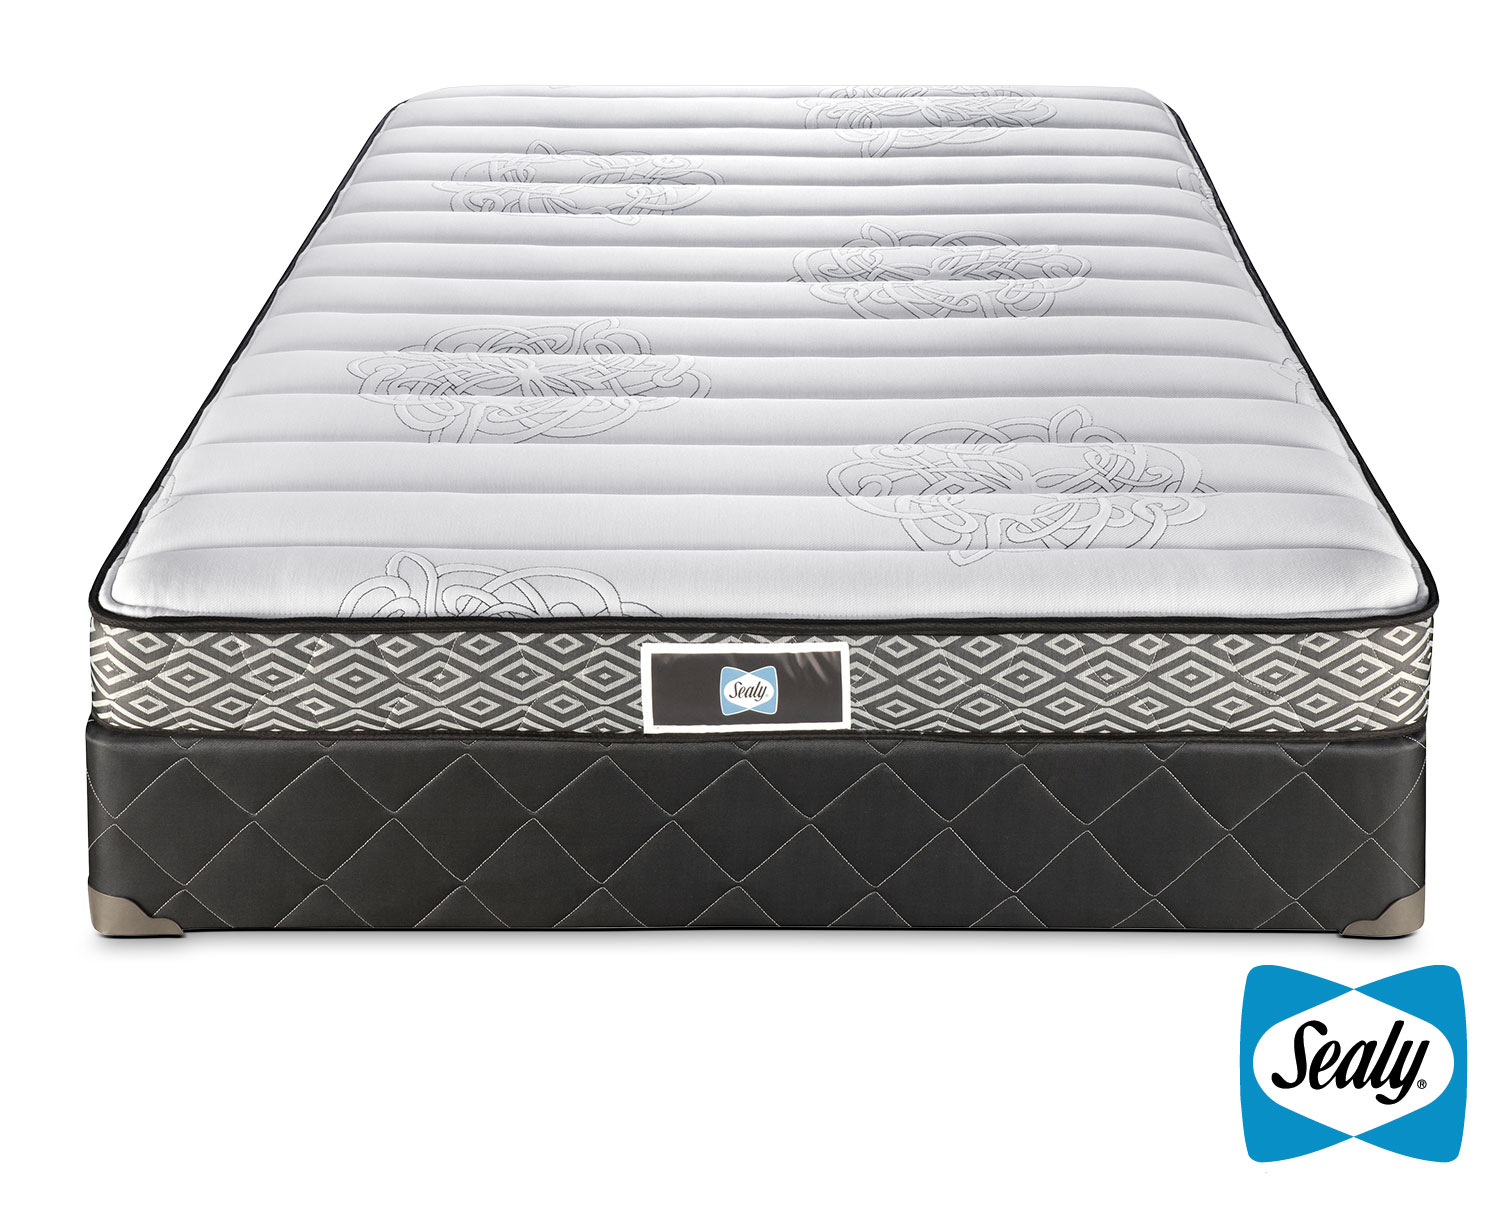 Mattresses and Bedding - Sealy Glacier Firm Twin Mattress and Boxspring Set